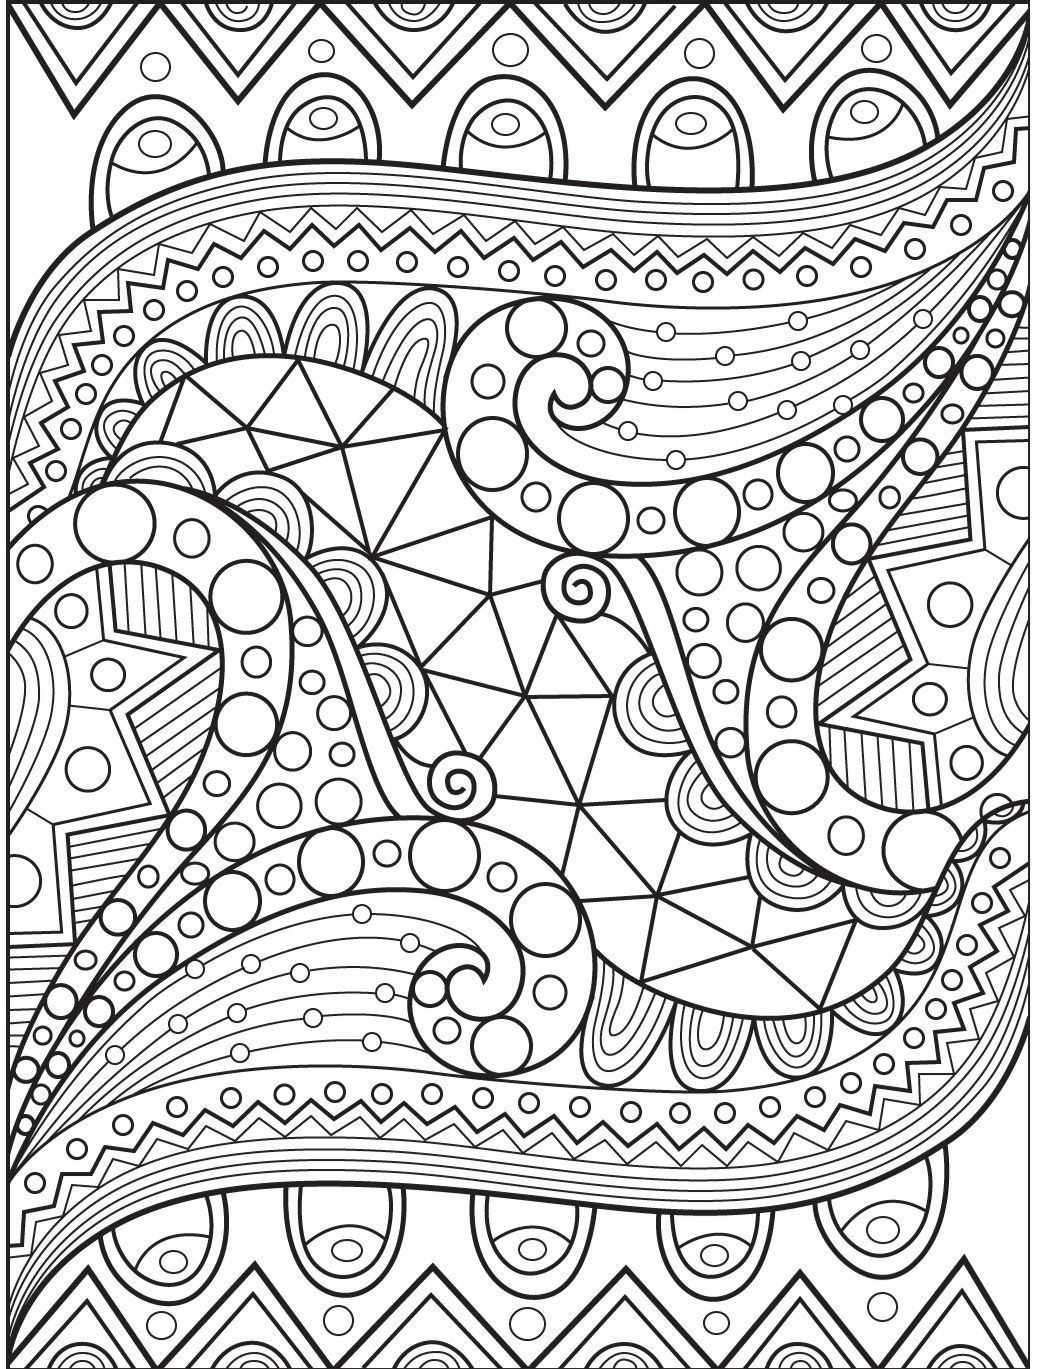 Abstract coloring page on Colorish: coloring book app for ... | fun printable coloring pages for adults